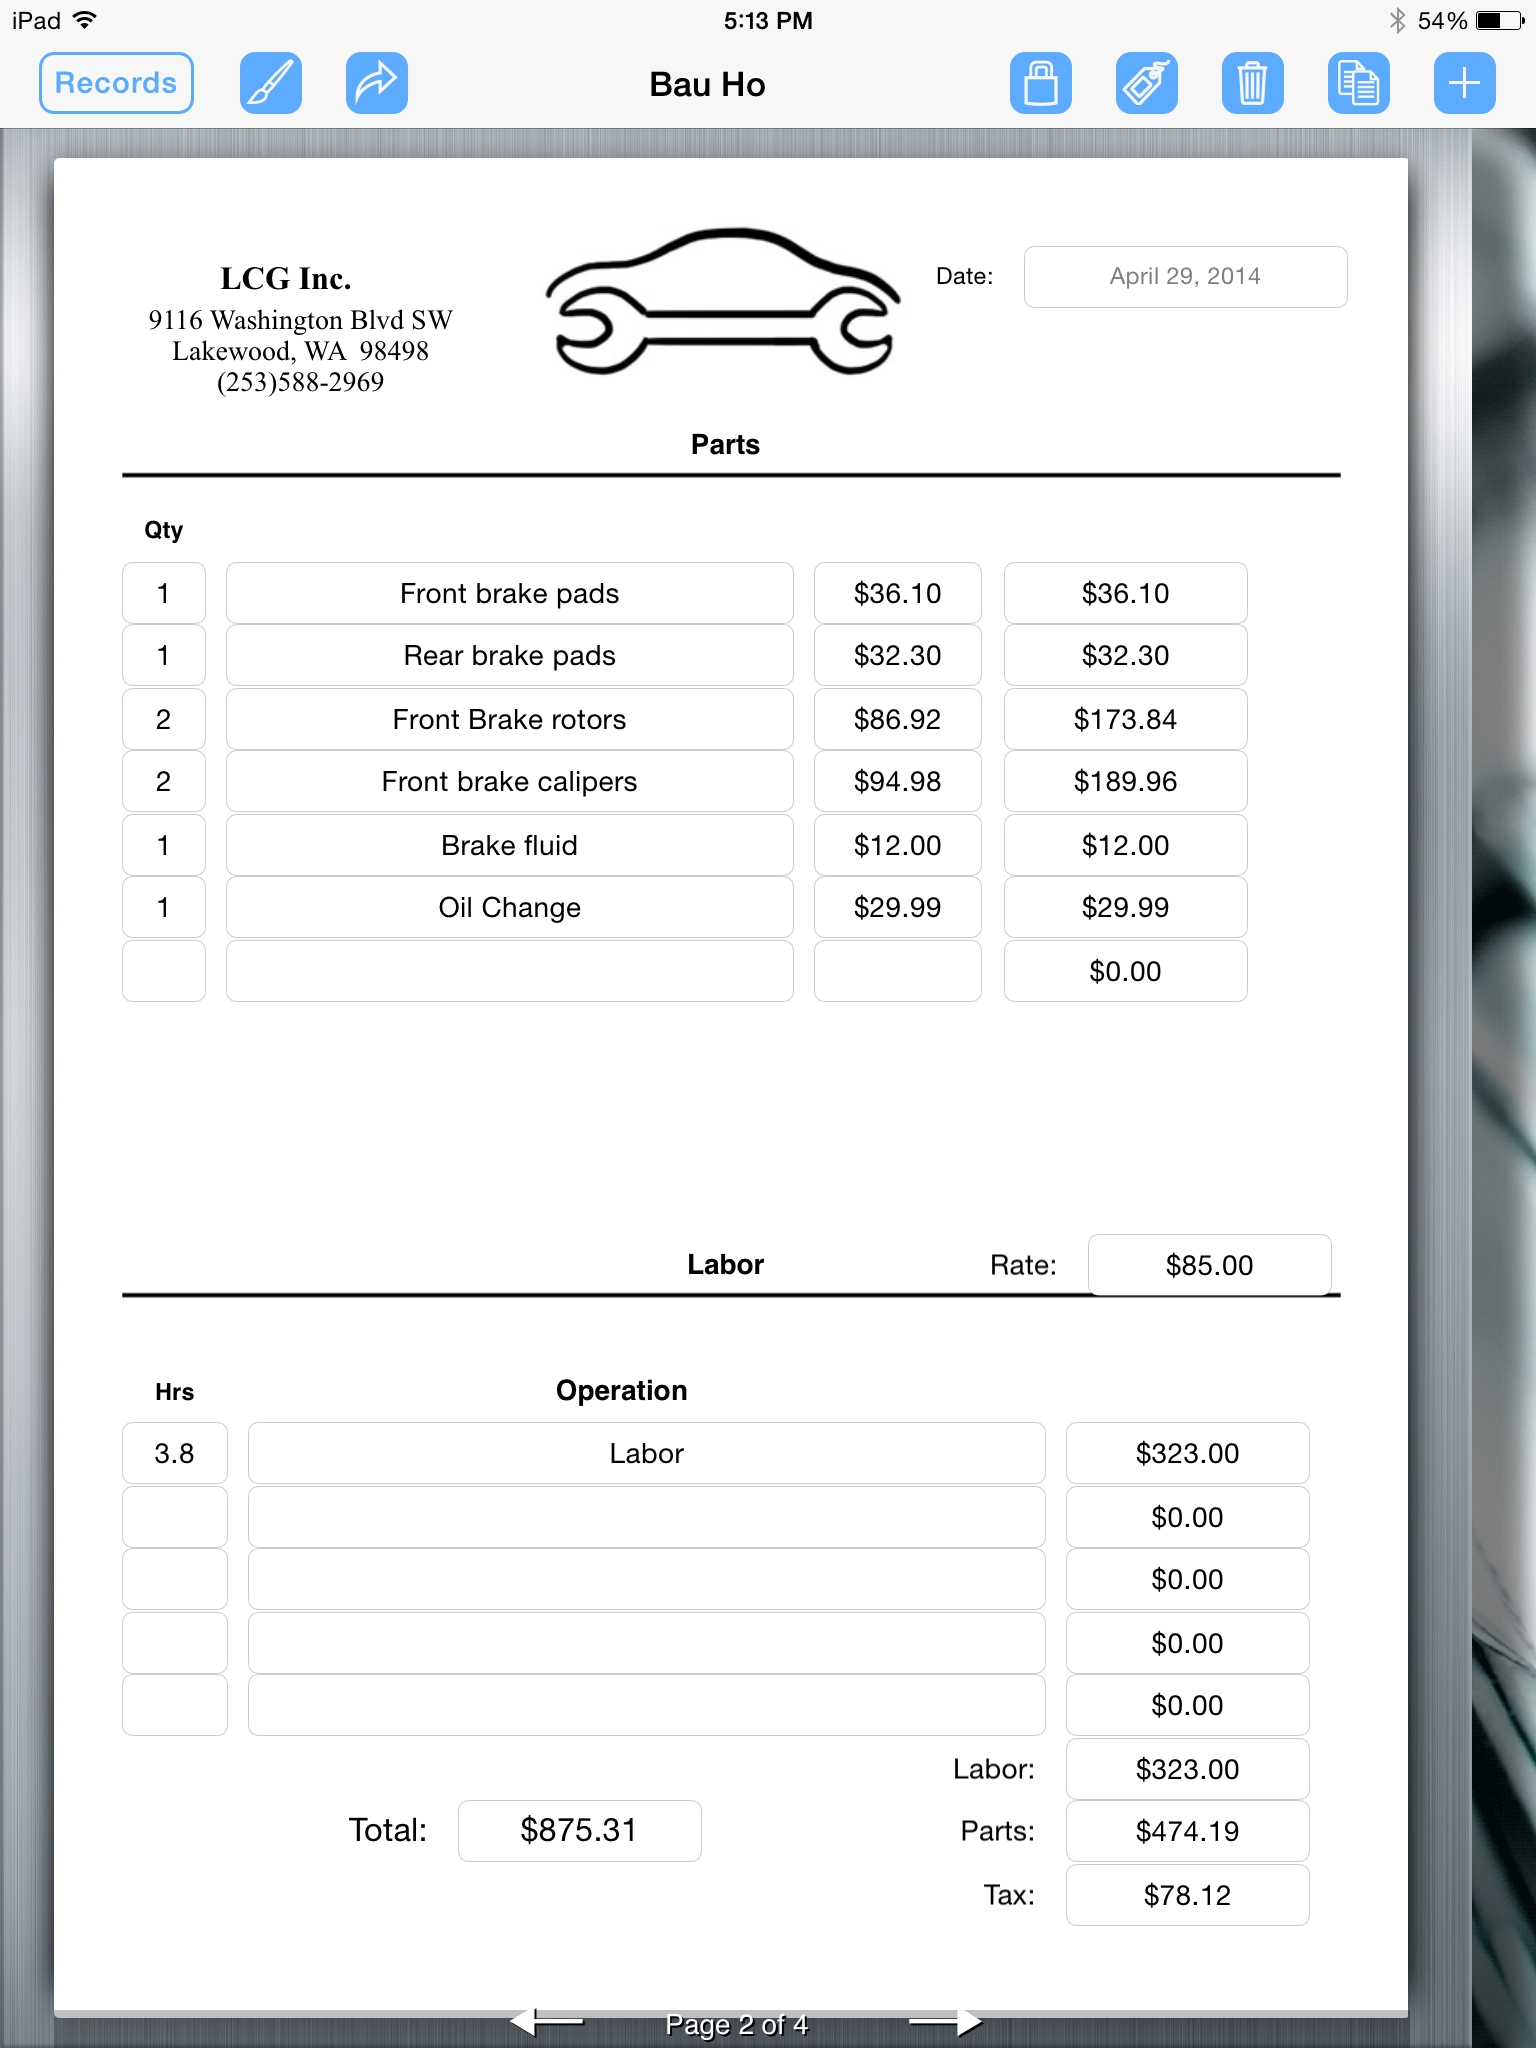 auto repair invoice auto repair service uses ipad for creating an invoice form 1536 X 2048